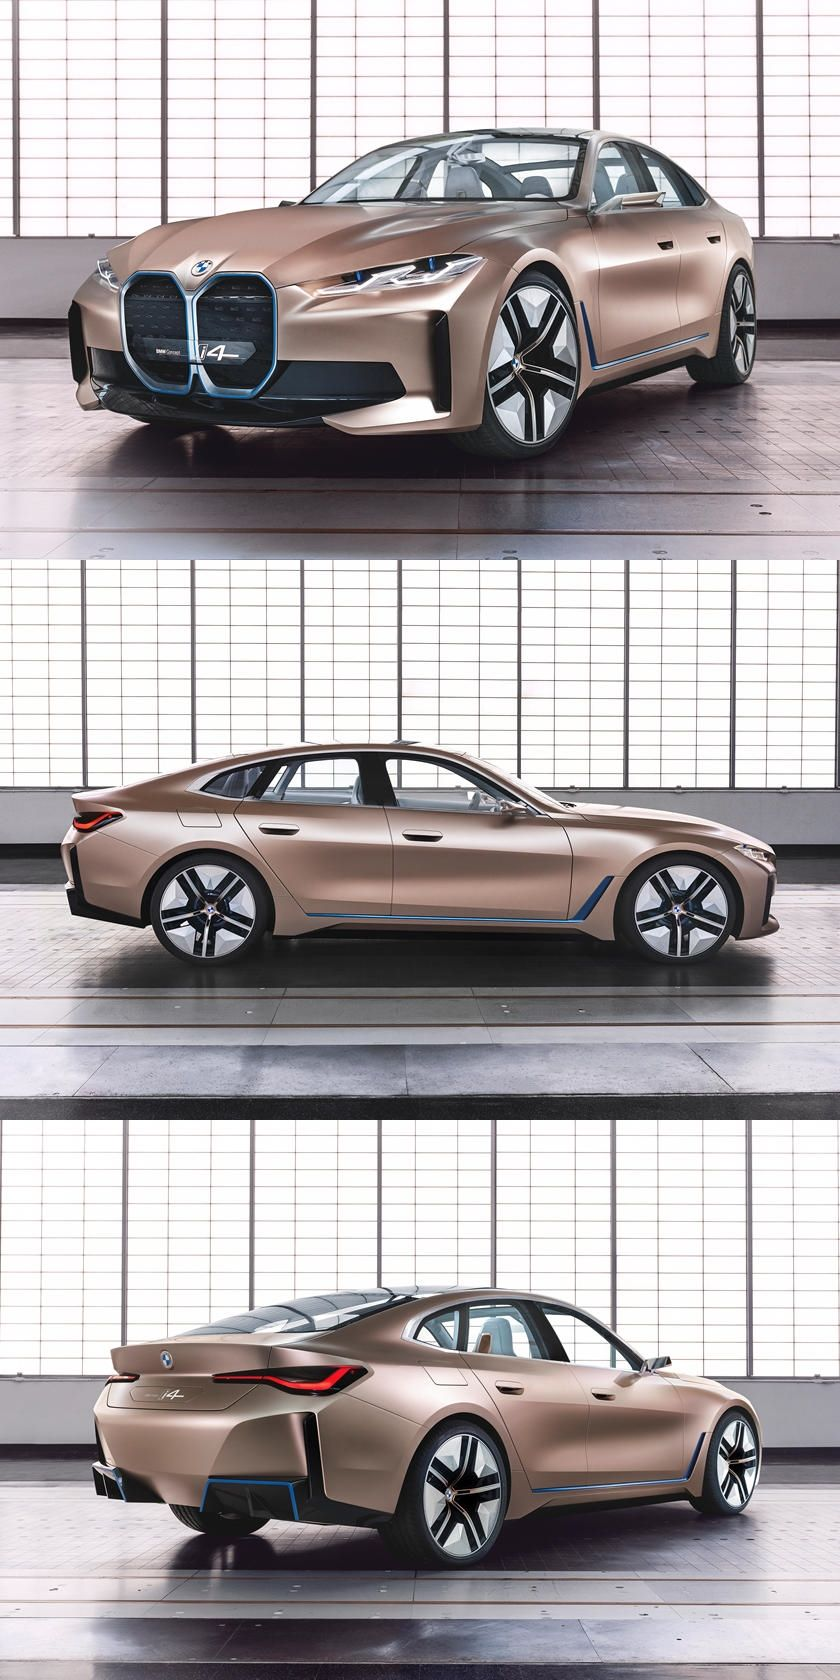 BMW Admits Designing Autonomous Cars Won't Be Easy. Self-driving Bimmers could look radically different.